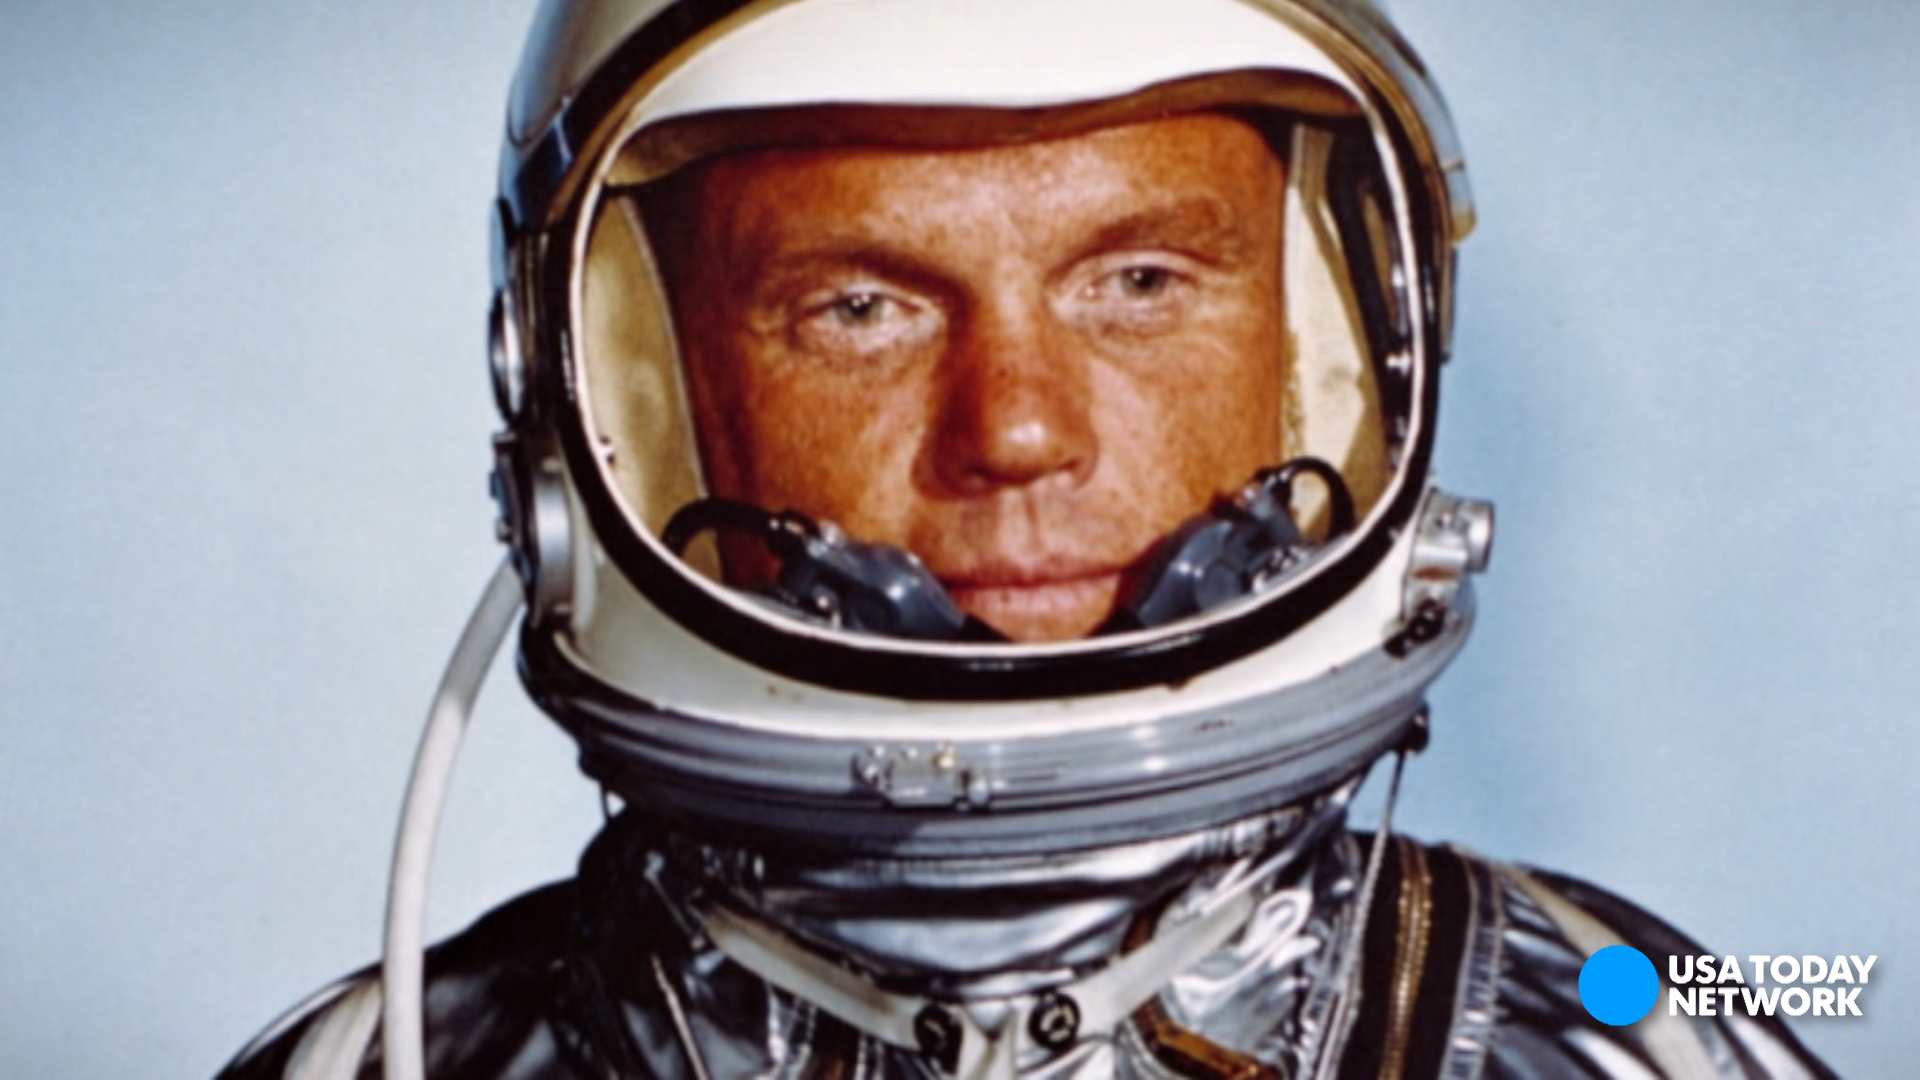 Legendary astronaut and former U.S. Sen. John Glenn died at age 95. A previous version of this video misstated two of Glenn's achievements. He was the first American to orbit the Earth, and he represented Ohio in the U.S. Senate.